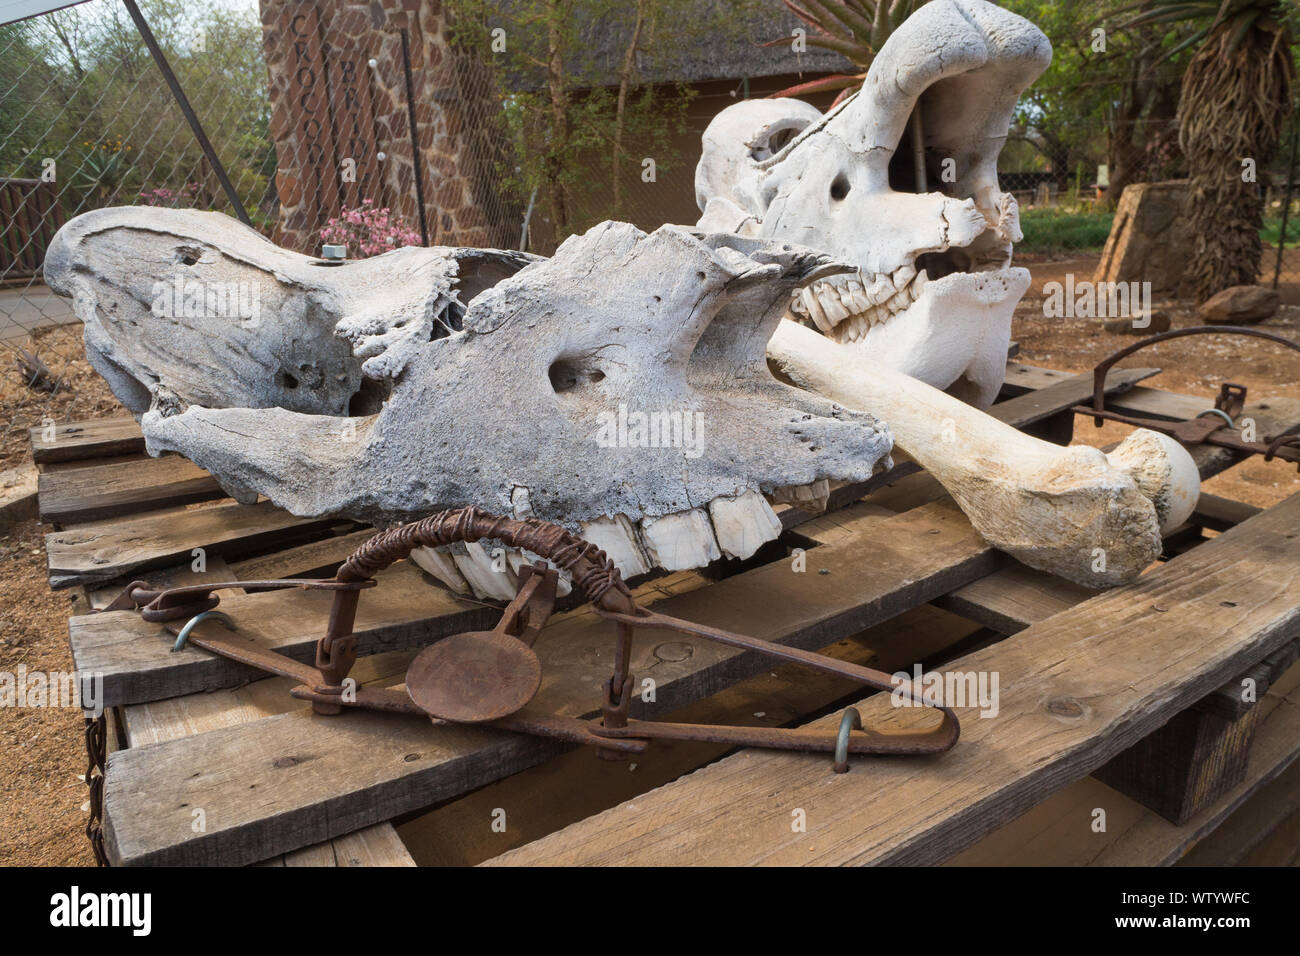 Rhinoceros or Rhino fossilised bone and skulls together with rusty or rusted traps in an exhibit at Crocodile Bridge,Kruger National Park,South Africa Stock Photo